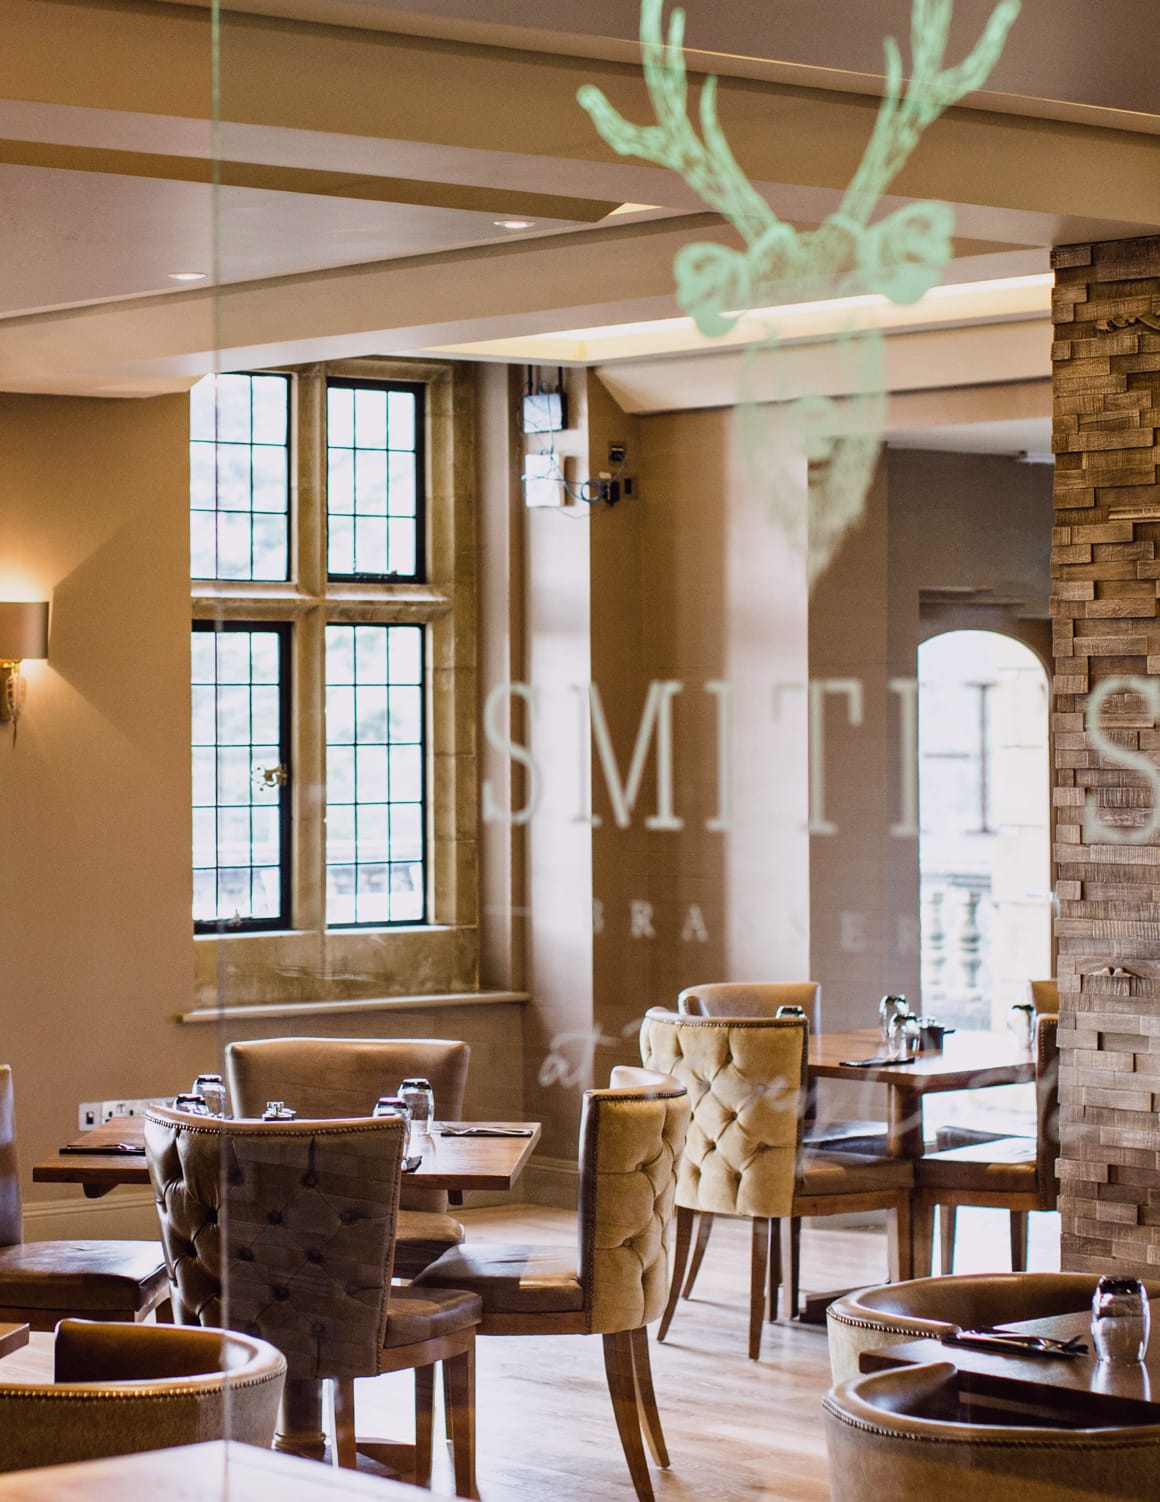 Looking for a Devon restaurant? Try our Smith's Brasserie.